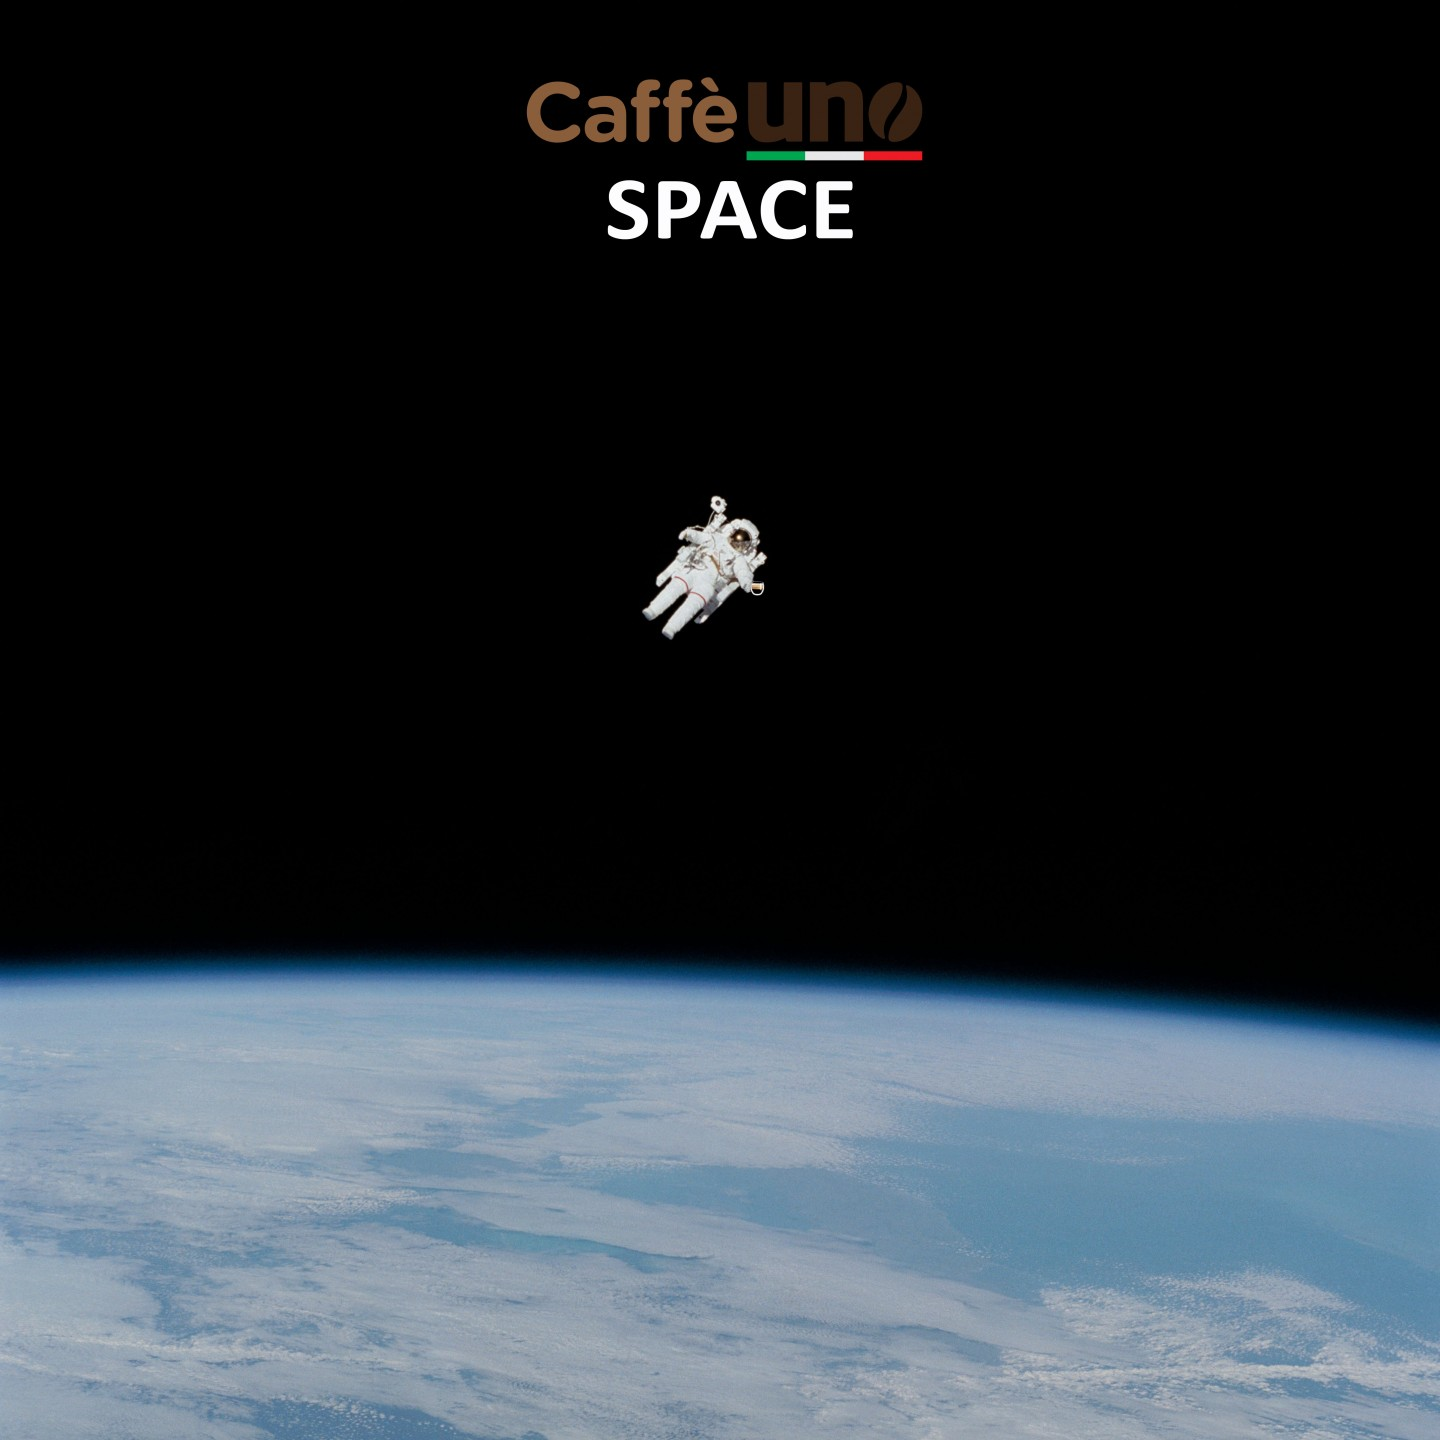 thumb_CAFFEUNO_SPACE_1554098074.jpg